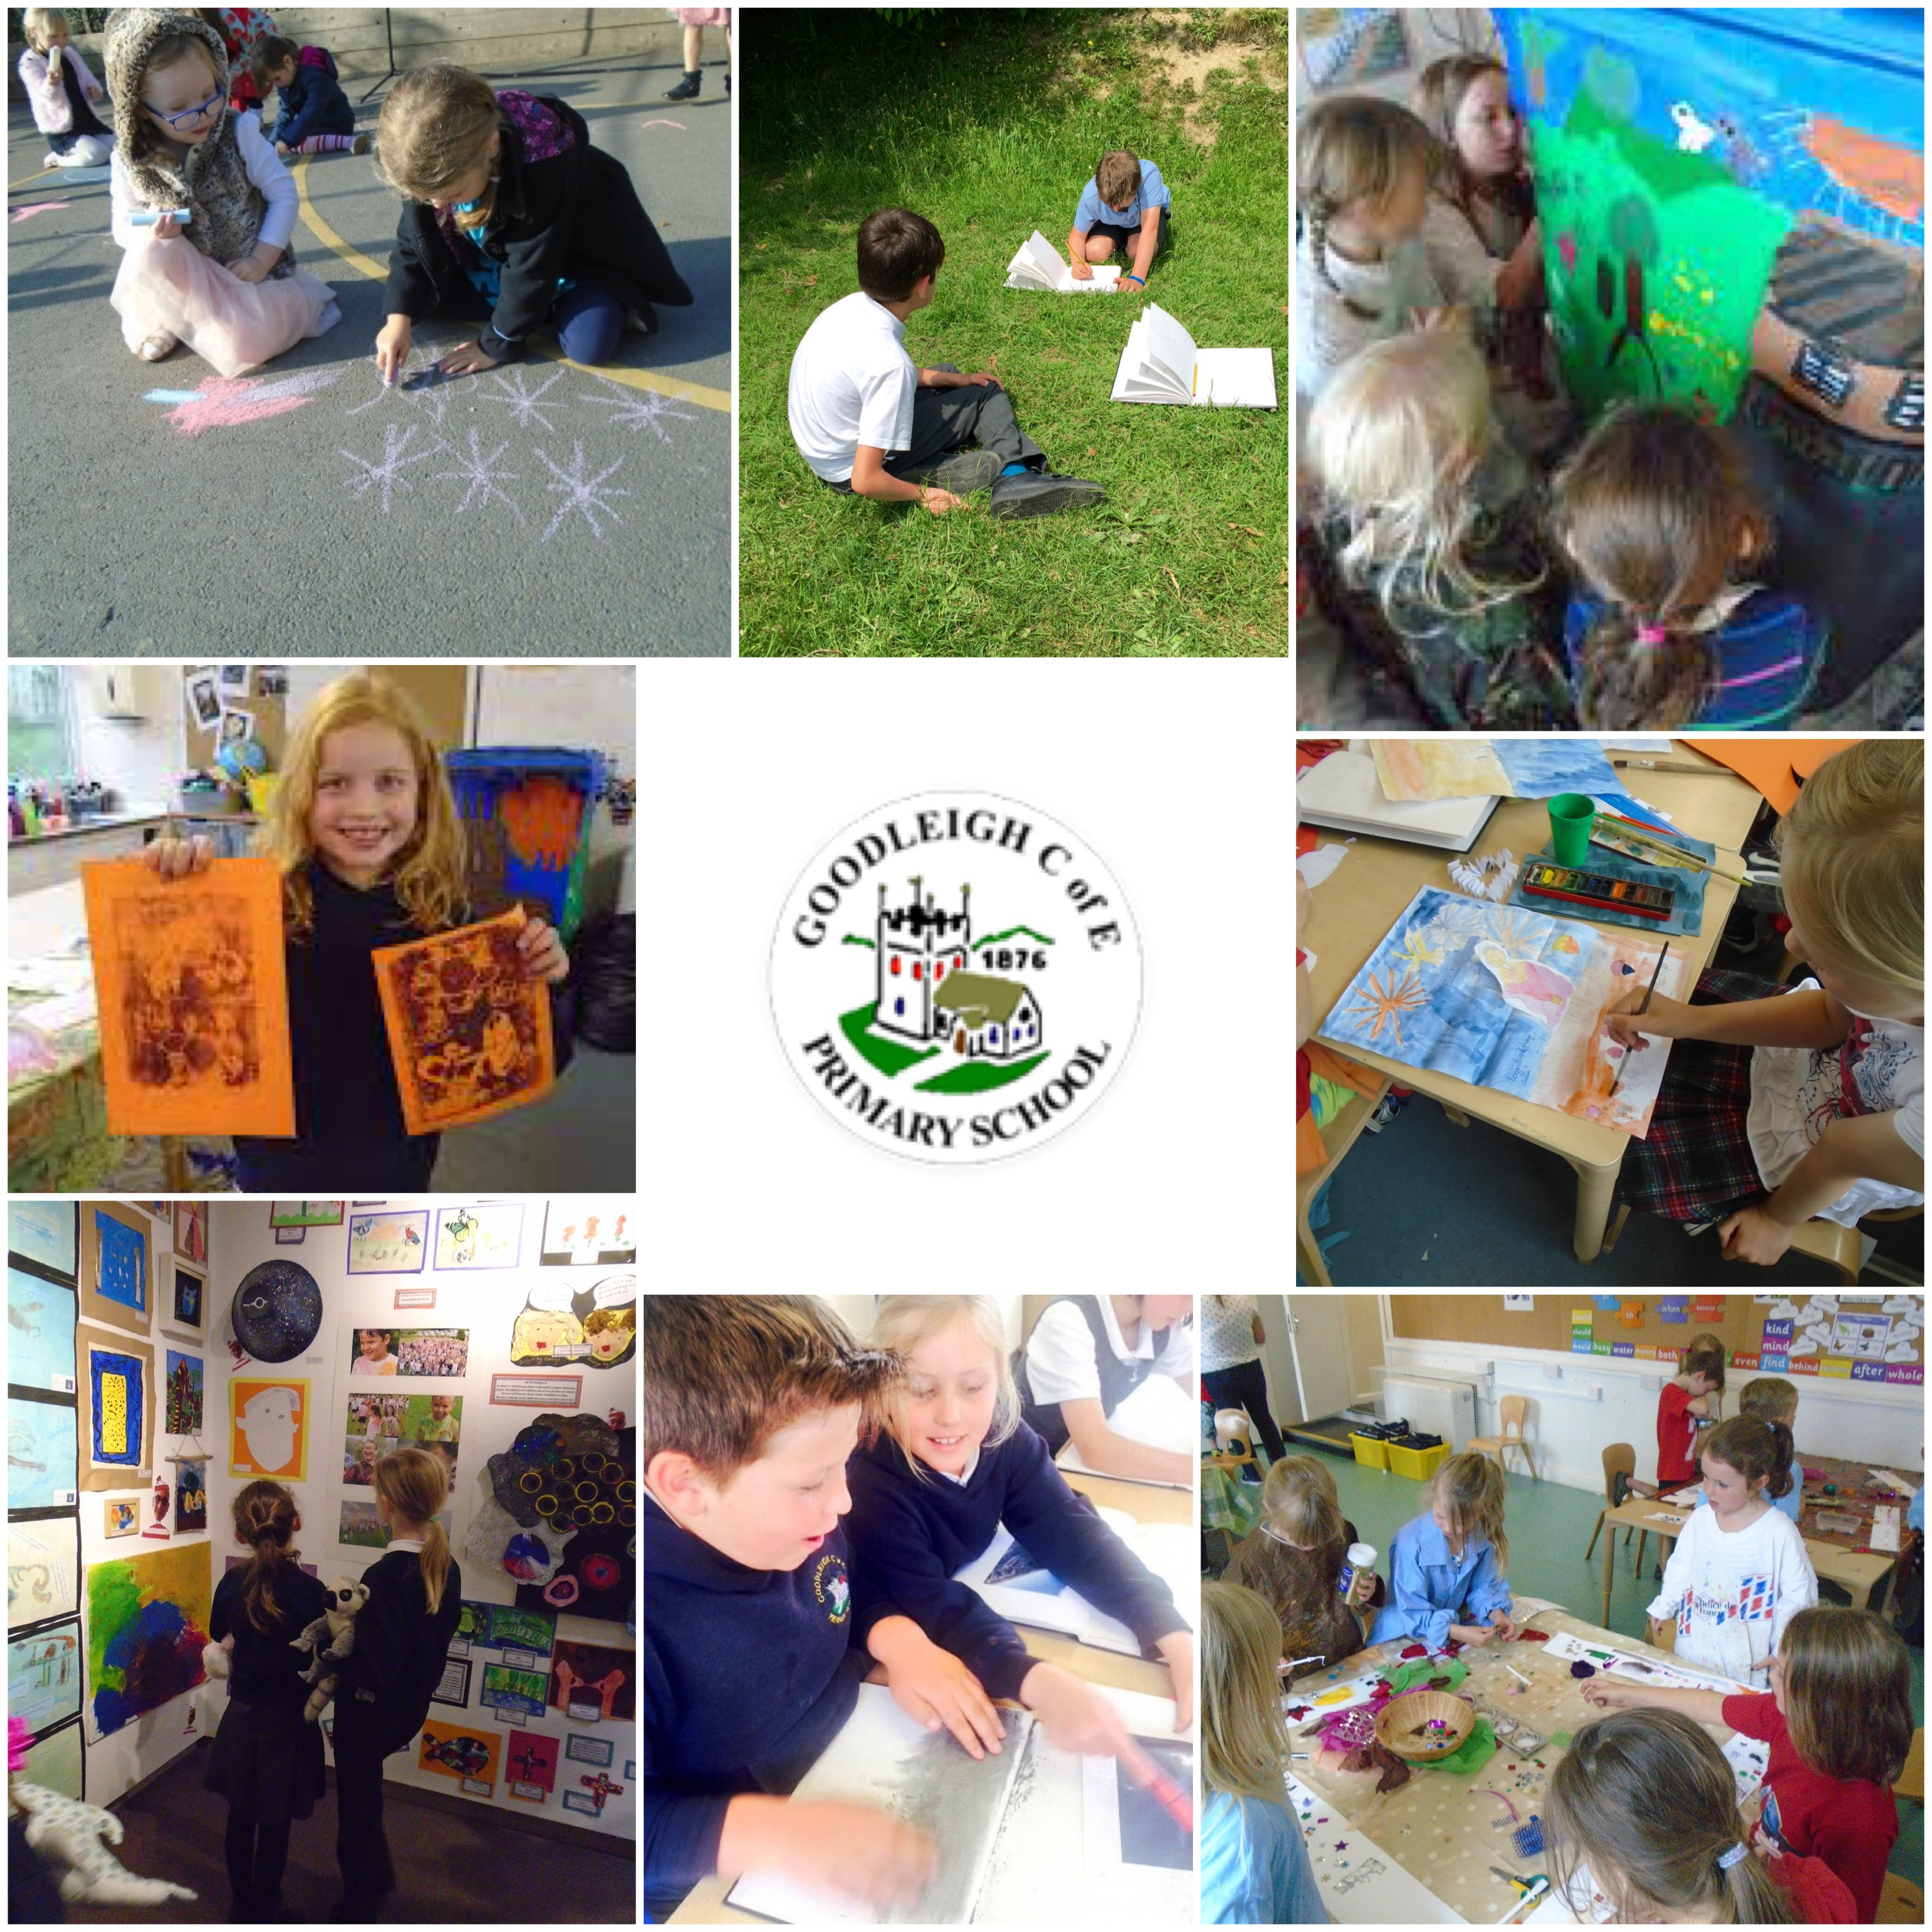 Goodleigh Brilliant Makers Art Club